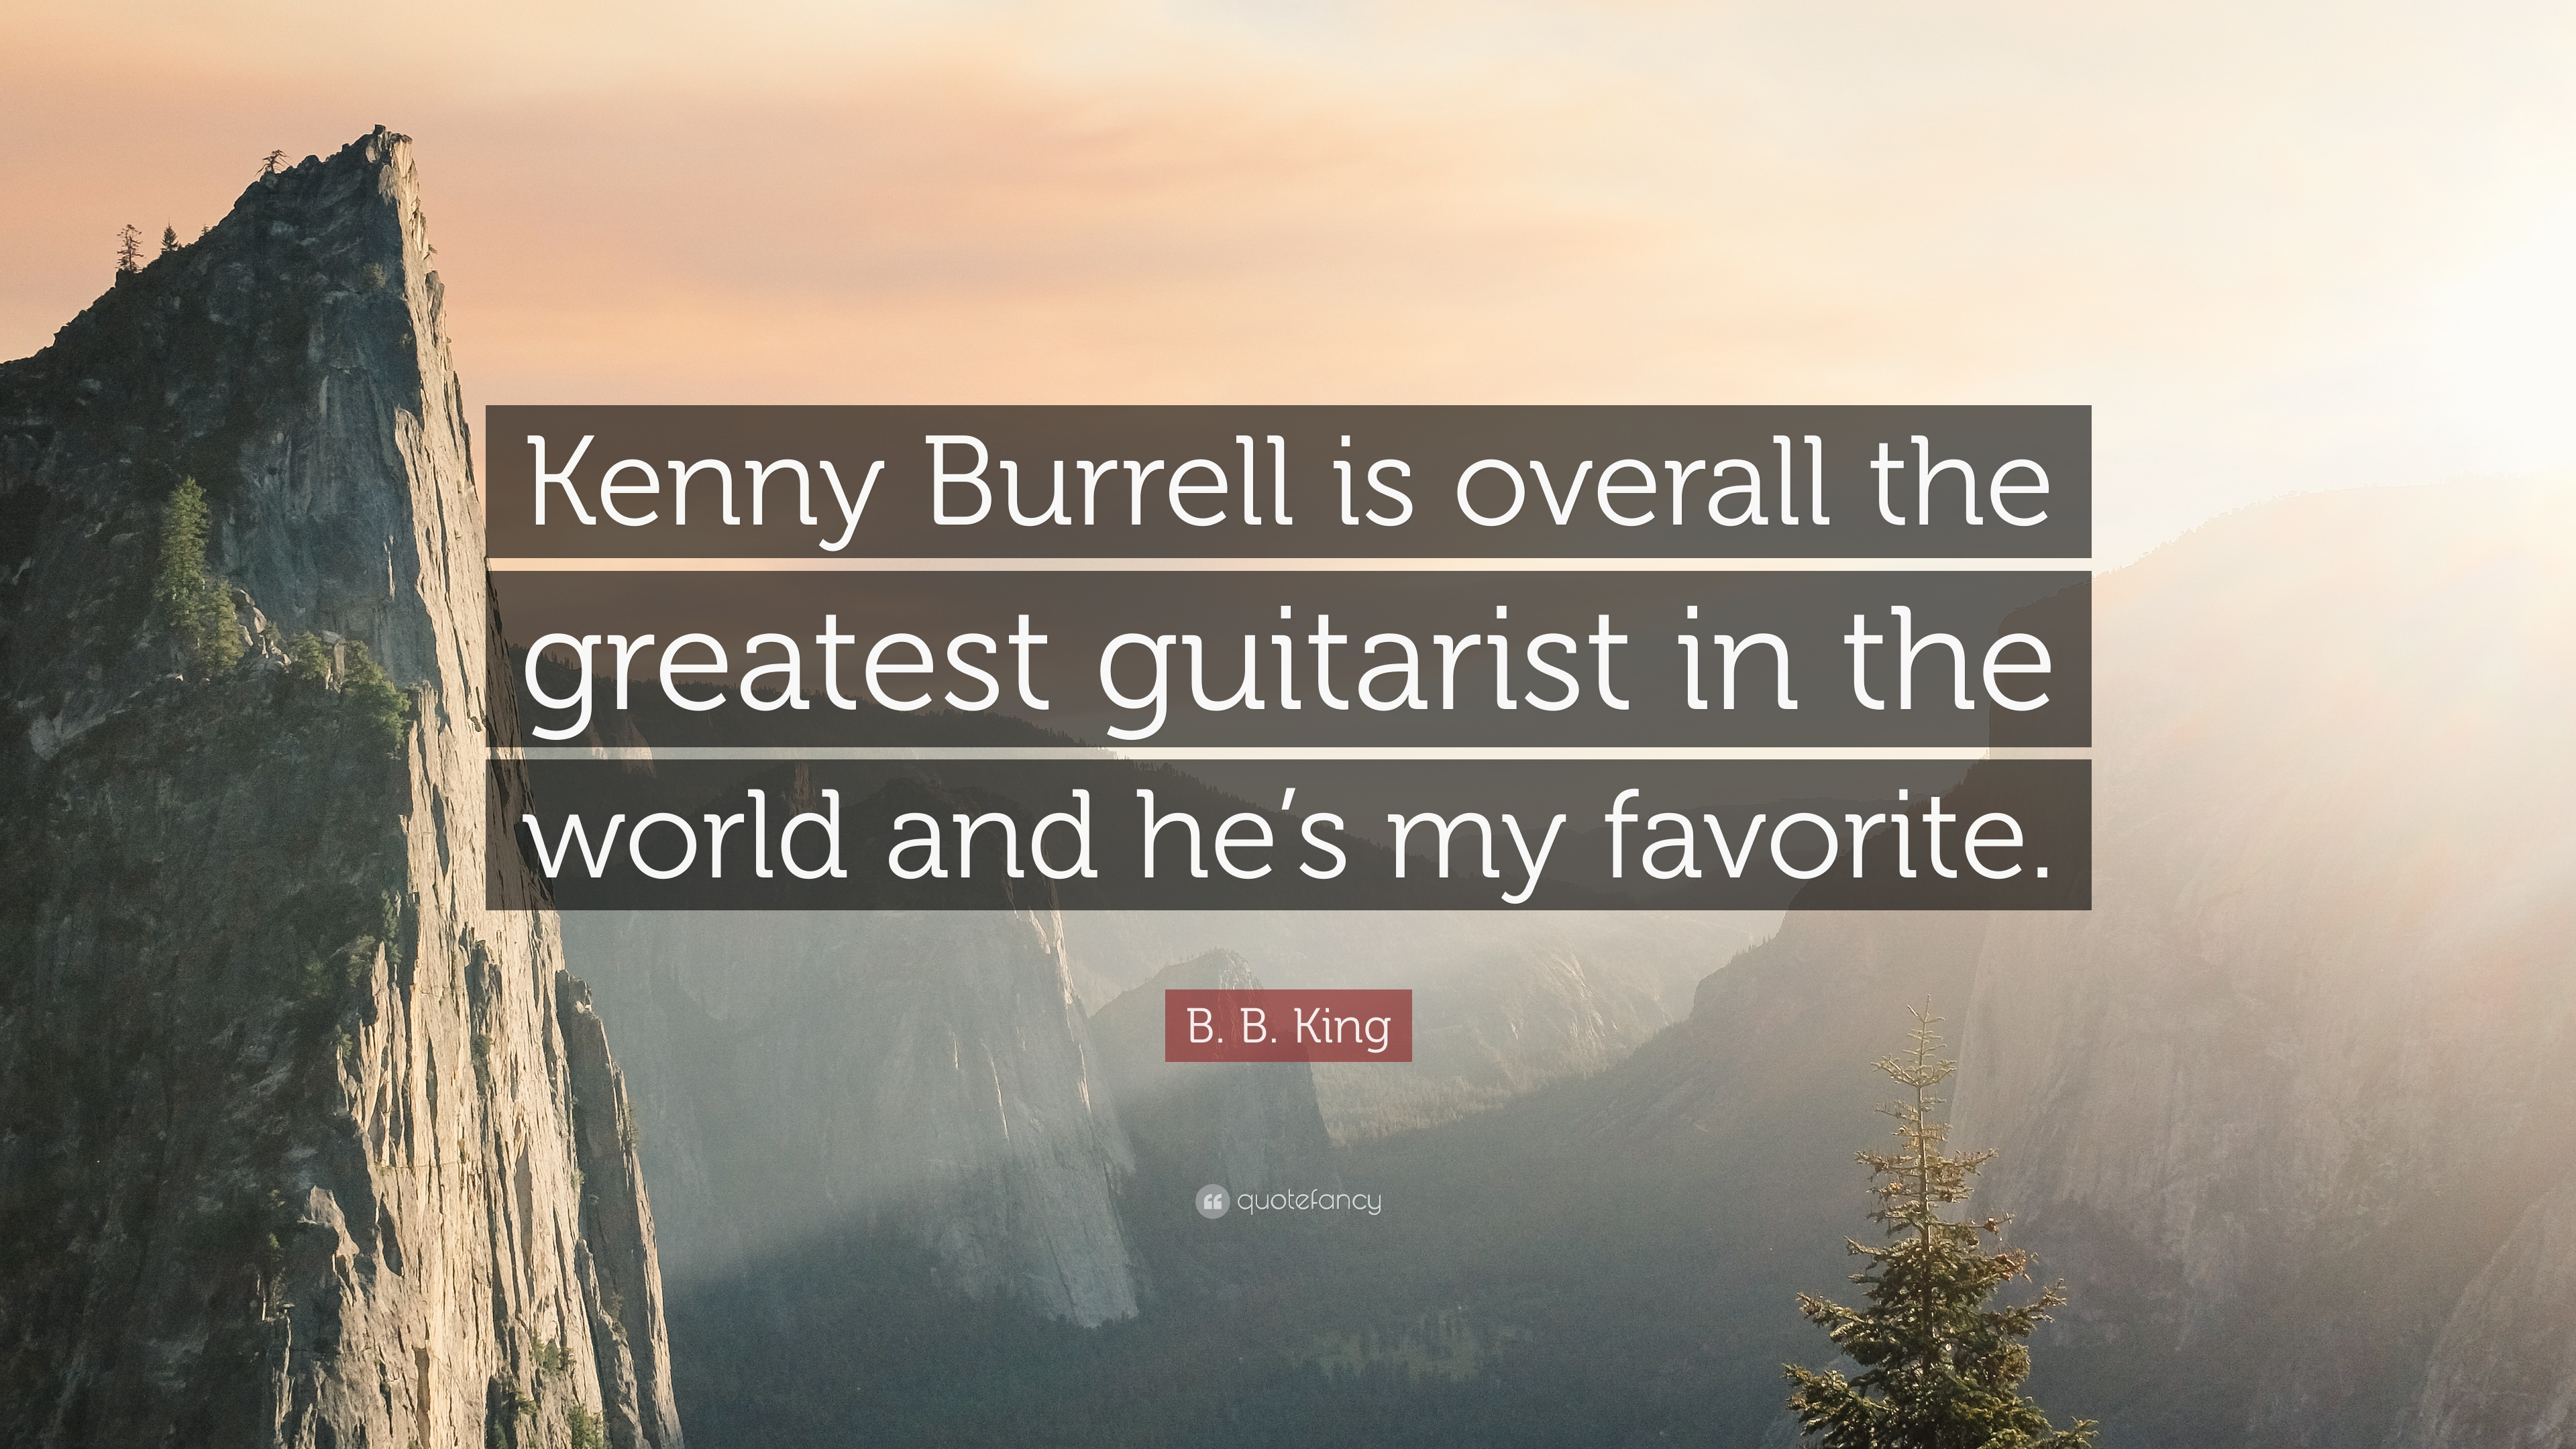 B B King Quote Kenny Burrell Is Overall The Greatest Guitarist